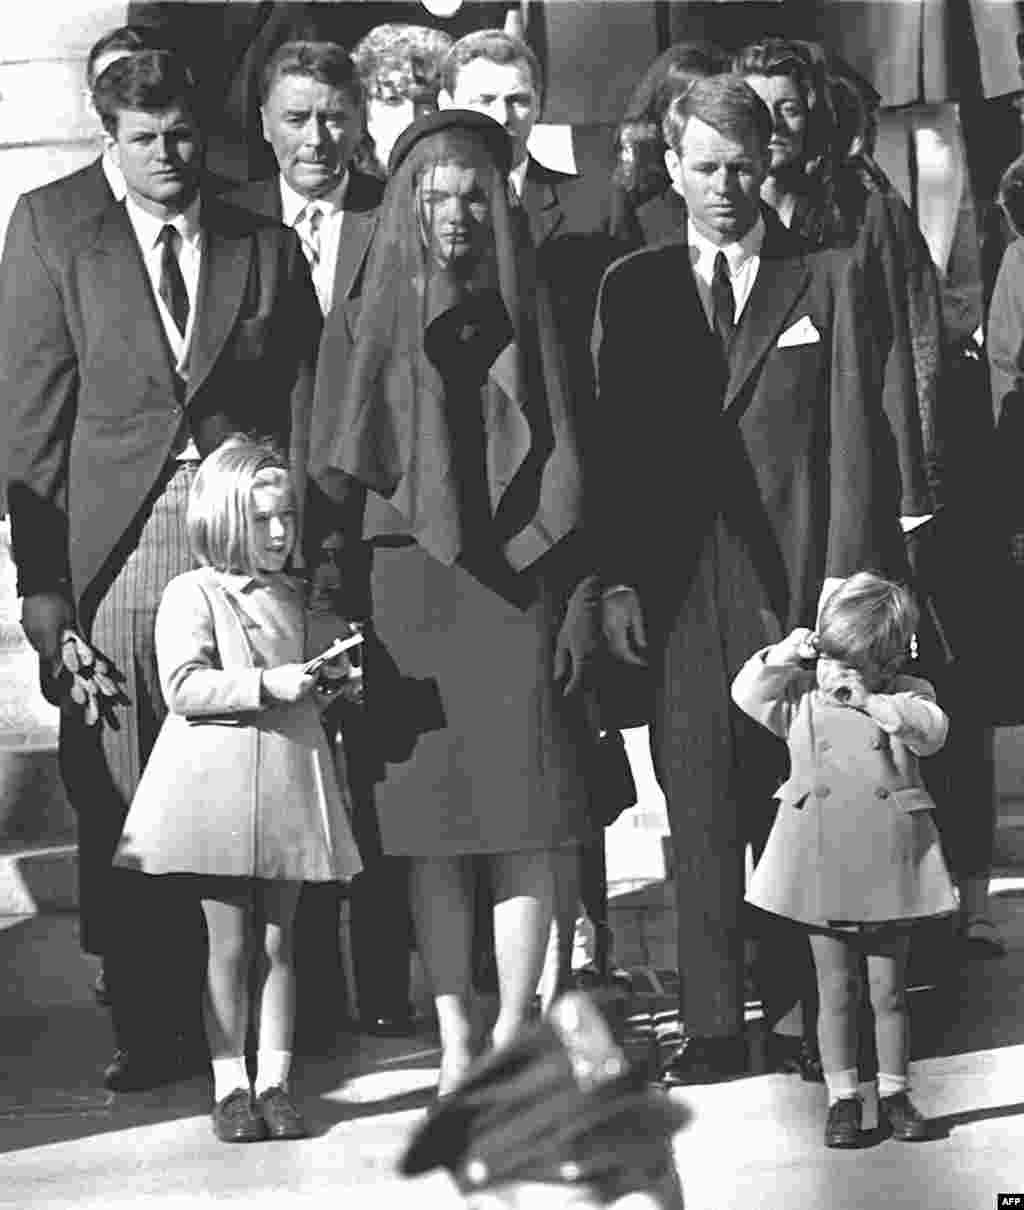 Jacqueline Kennedy stands with her two children, Caroline and John Jr., and brothers-in law Edward (Ted) (back left) and Robert (back right) at President Kennedy's funeral on November 26, 1963, in Washington, D.C.